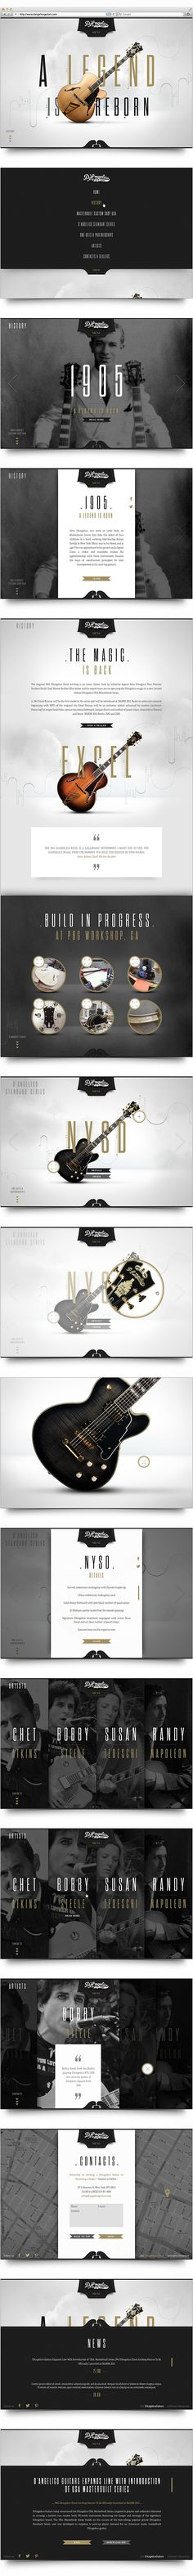 D'Angelico Guitars by Stella Petkova, via #Behance #Webdesign